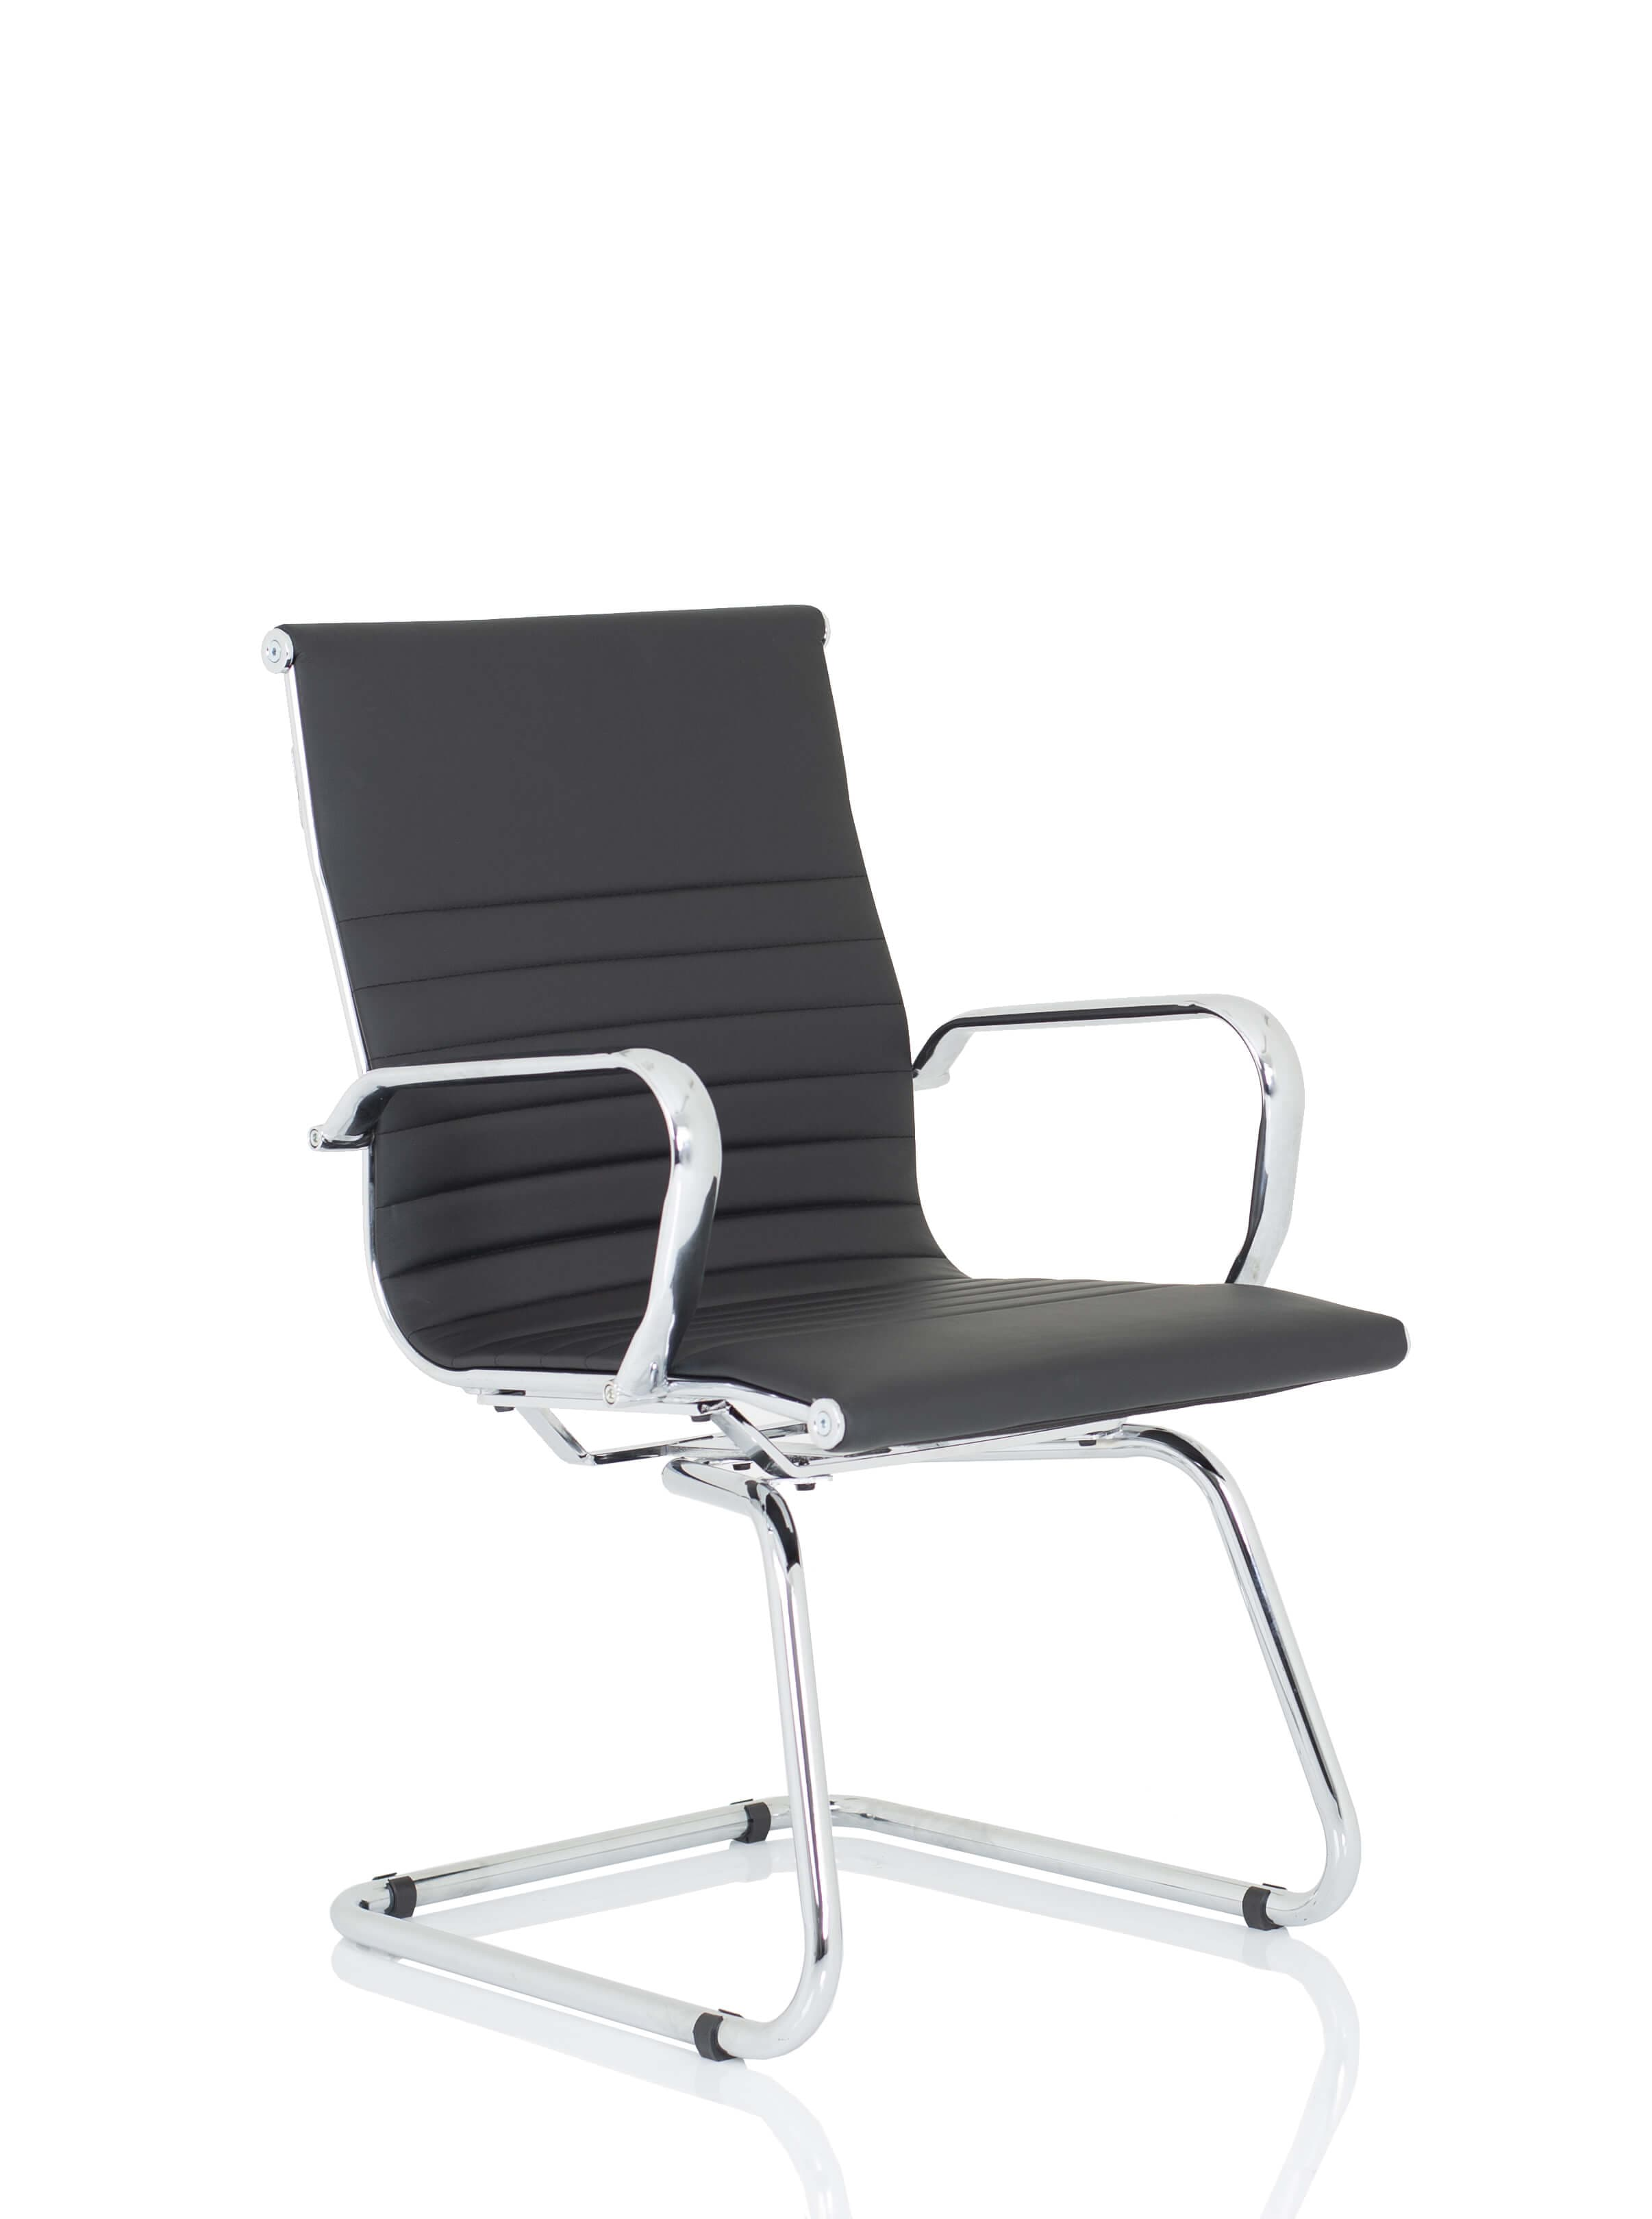 Nola Black Bonded Leather Cantilever Chair